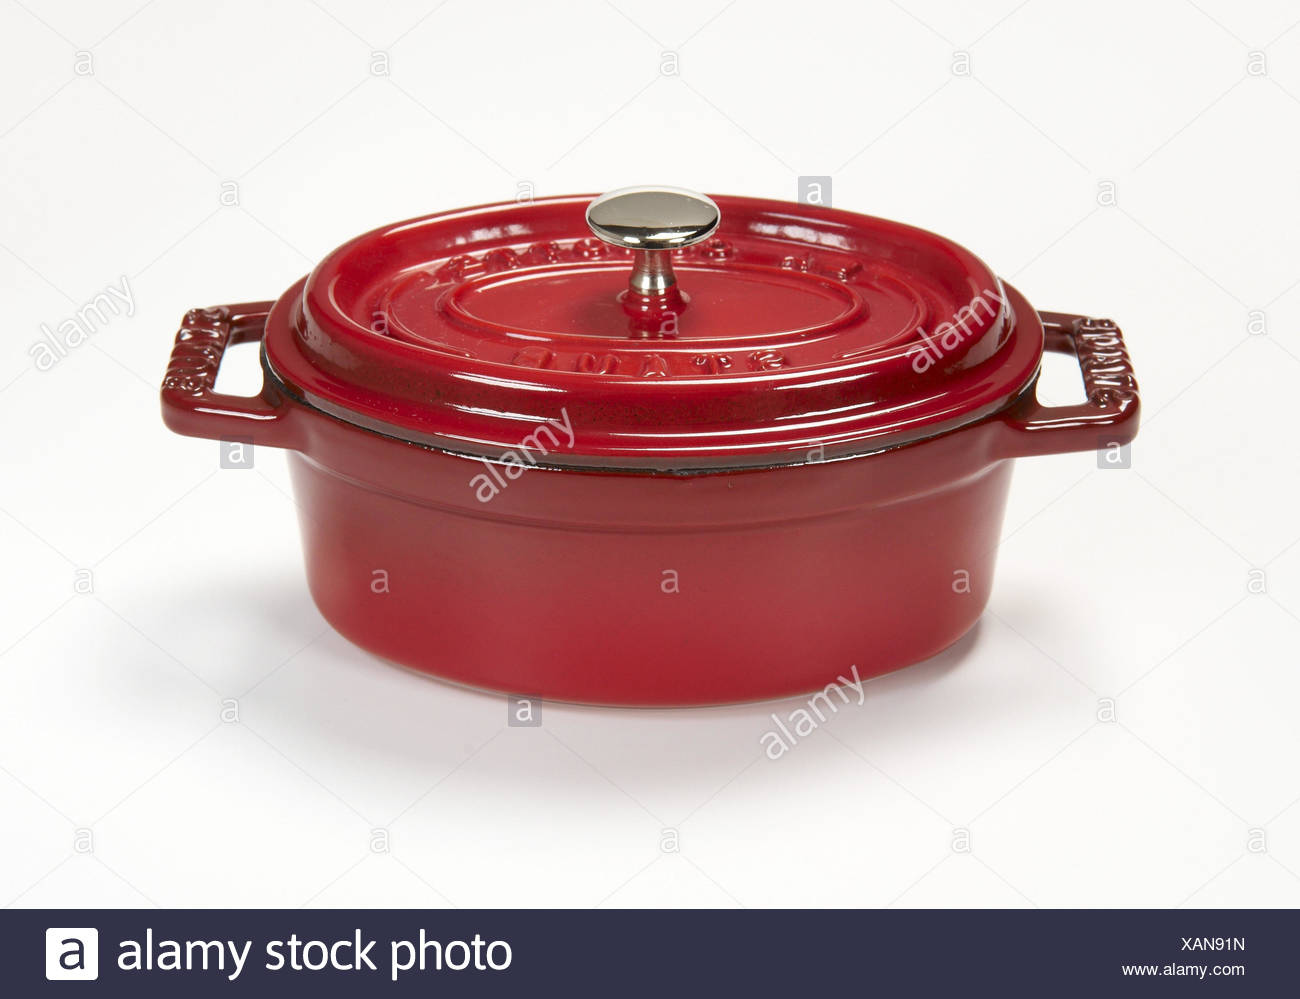 Cooking pot, lid, - Stock Image